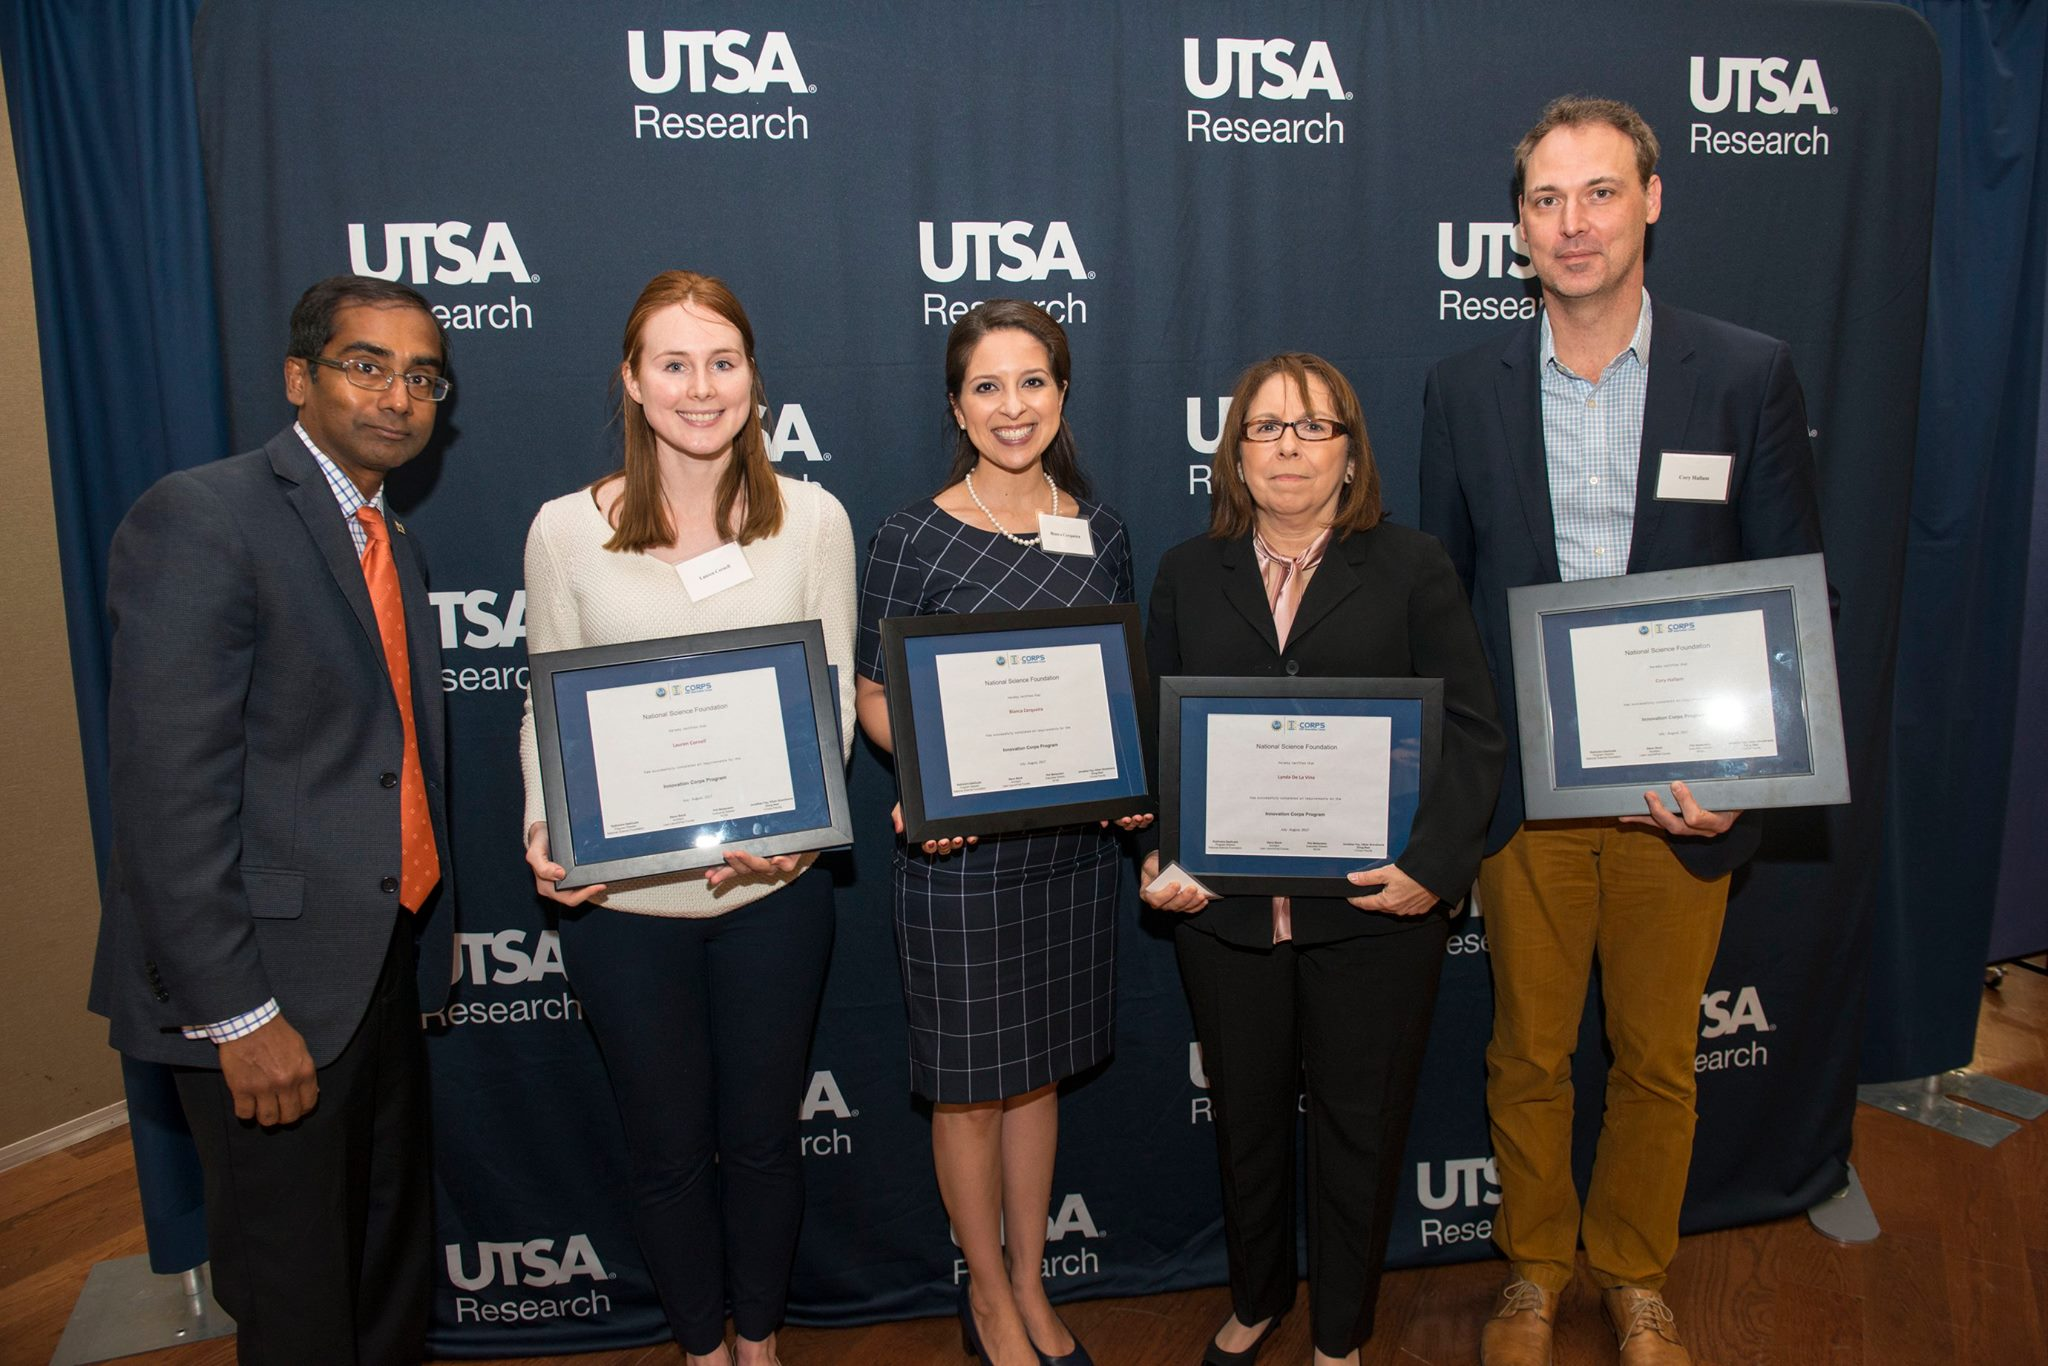 UTSA Innovation Award